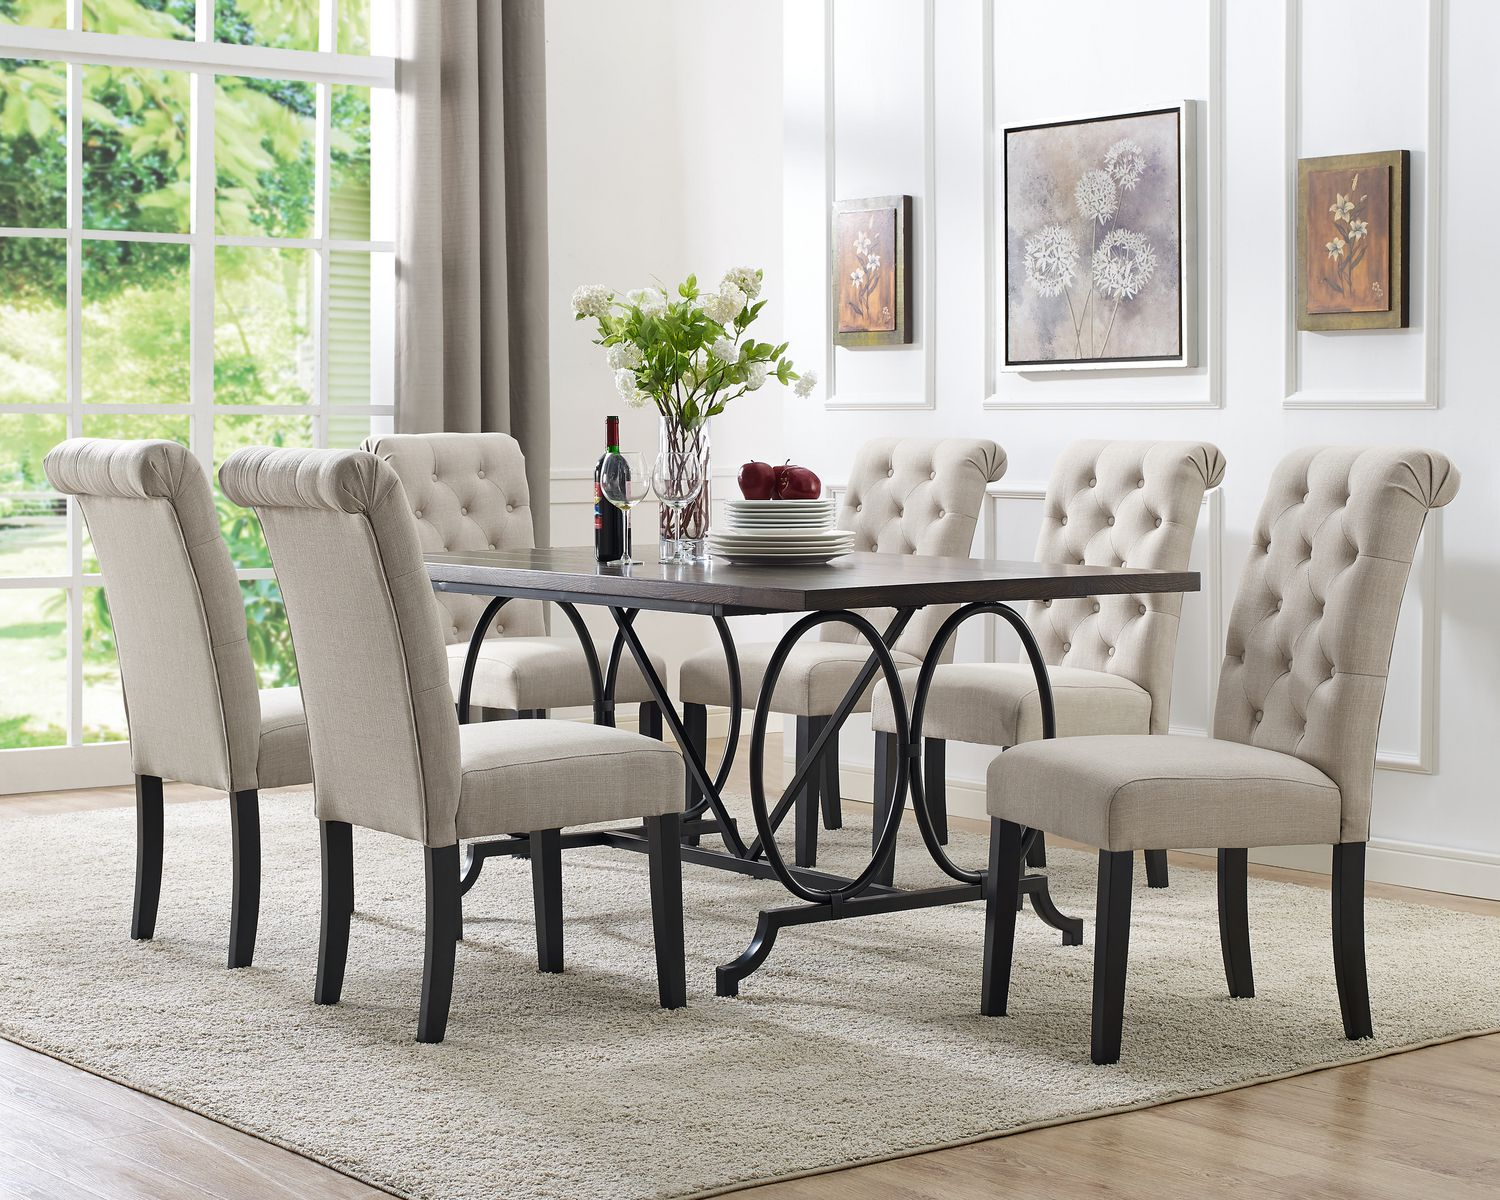 Brassex Inc Soho 7-Piece Dining Set, Table + 6 Chairs ...